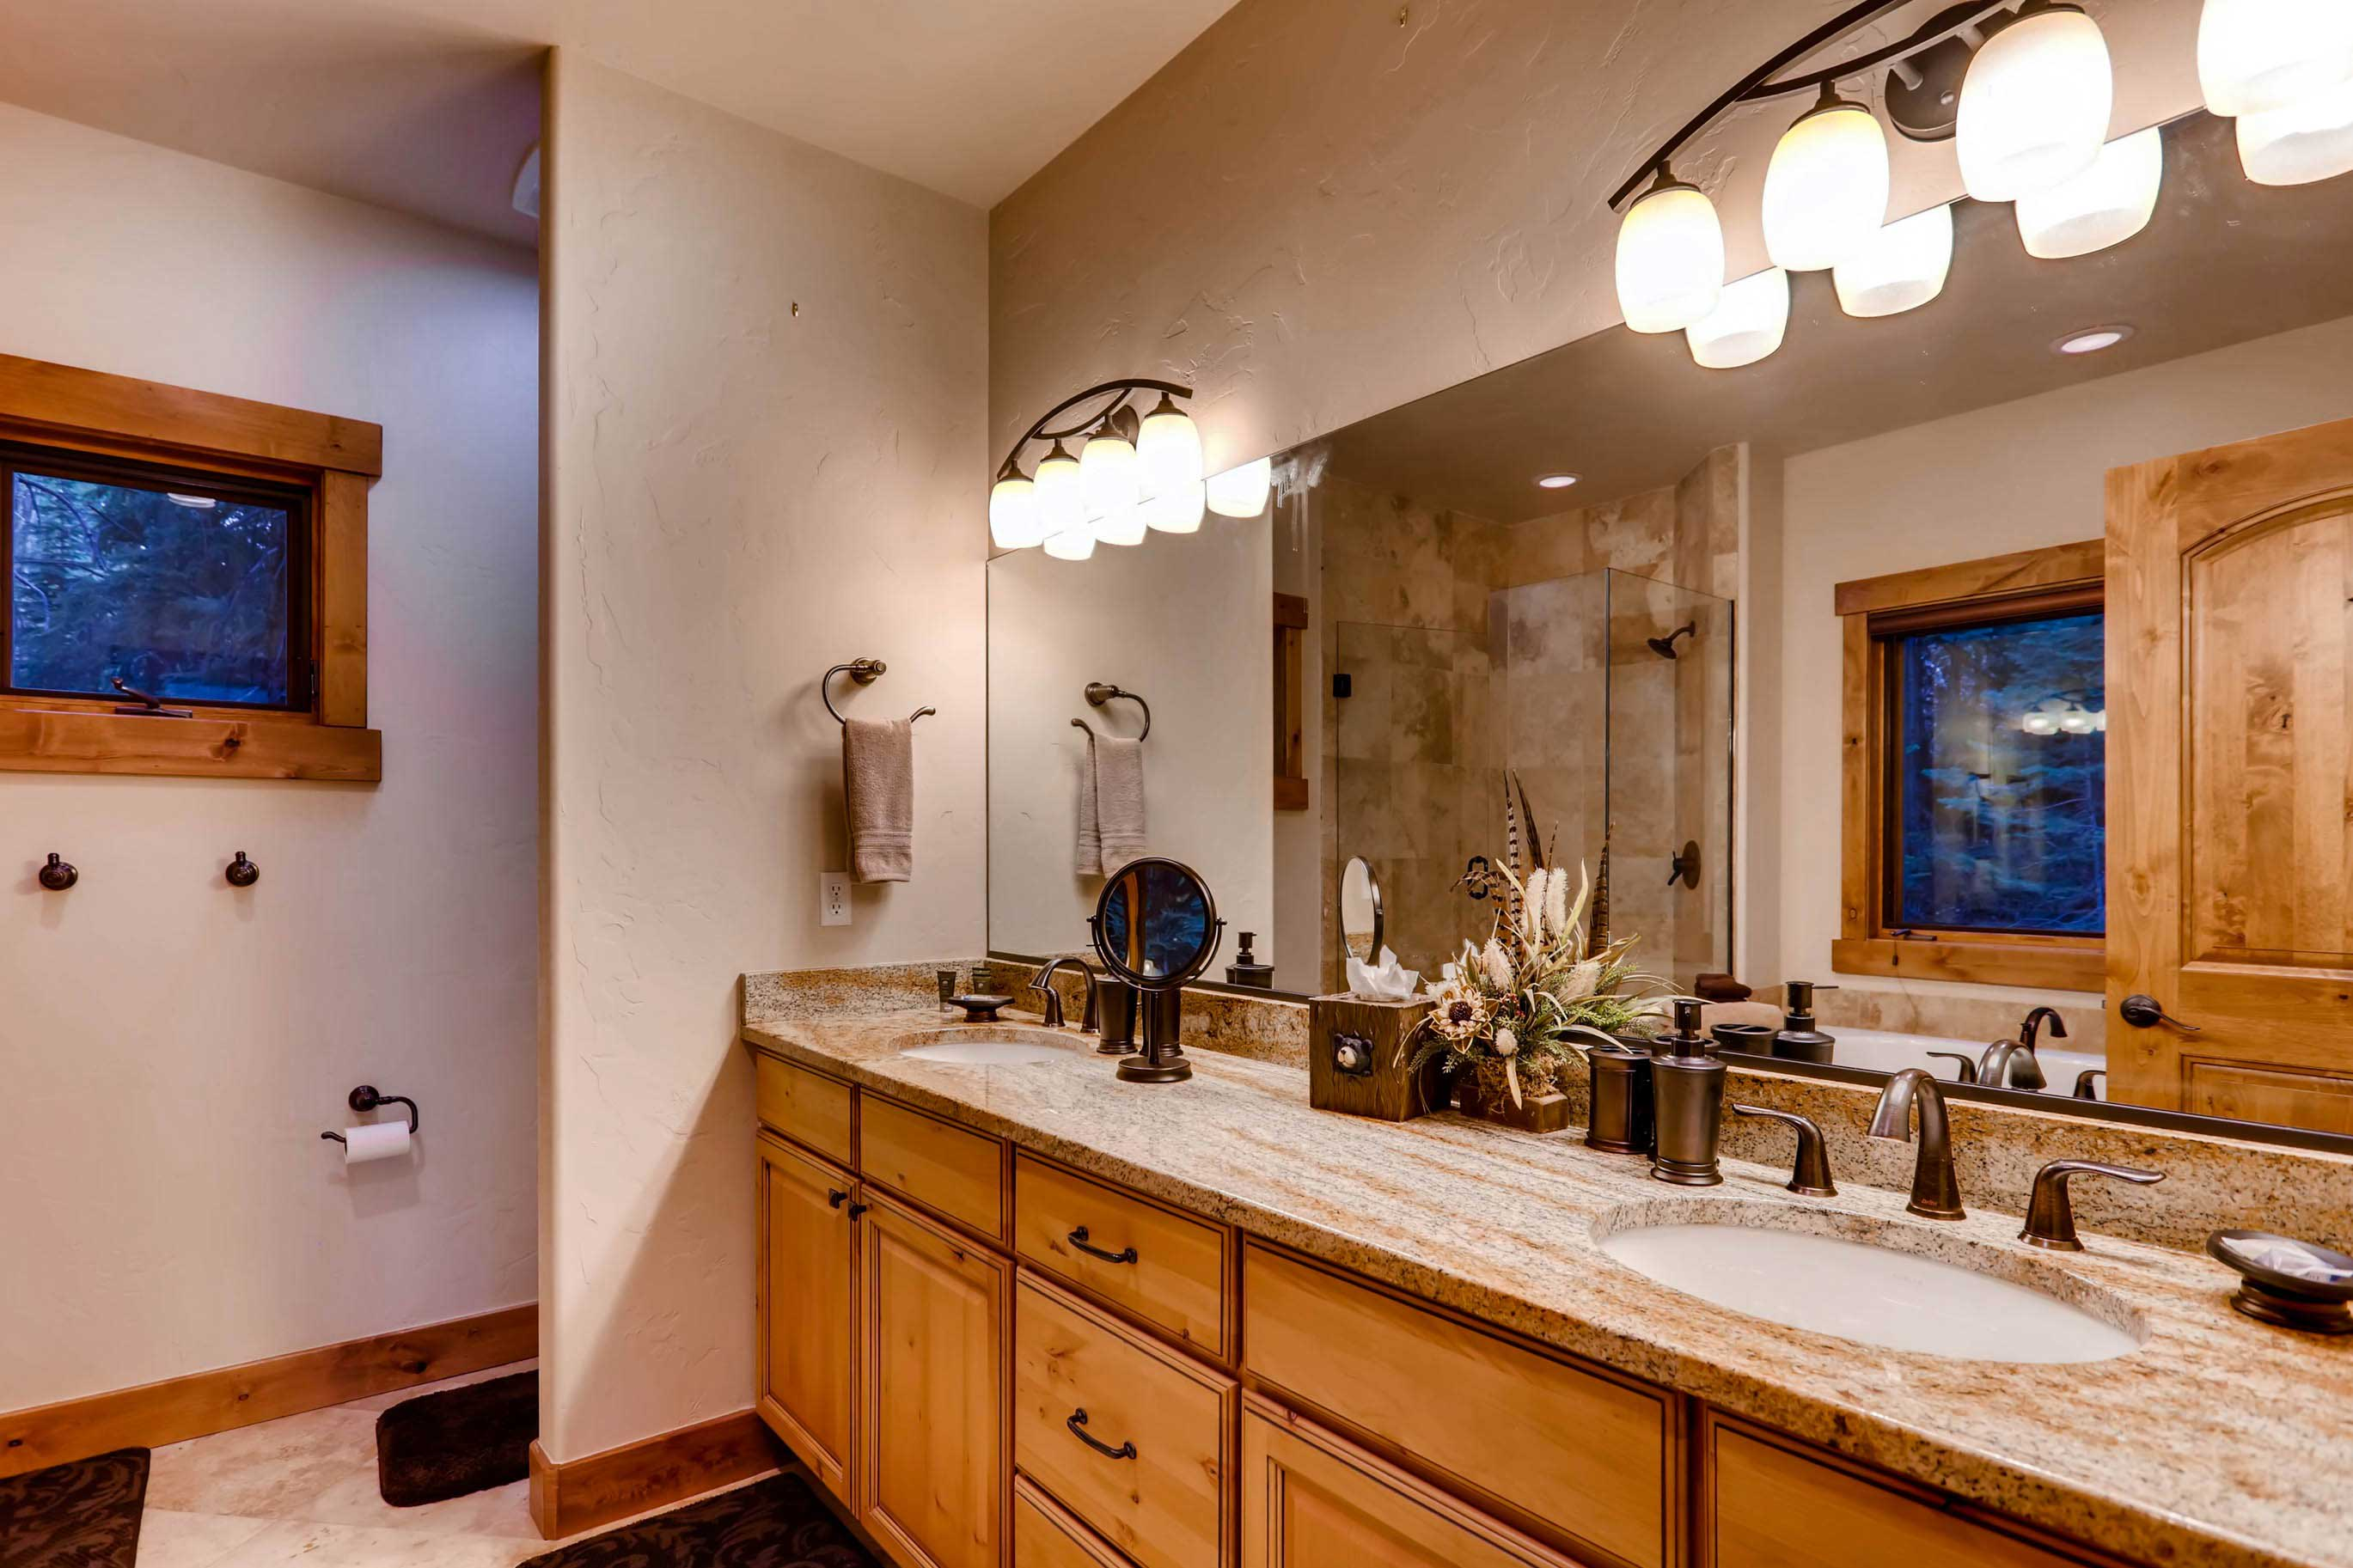 Those staying in either of the master bedrooms can enjoy an en-suite bath.